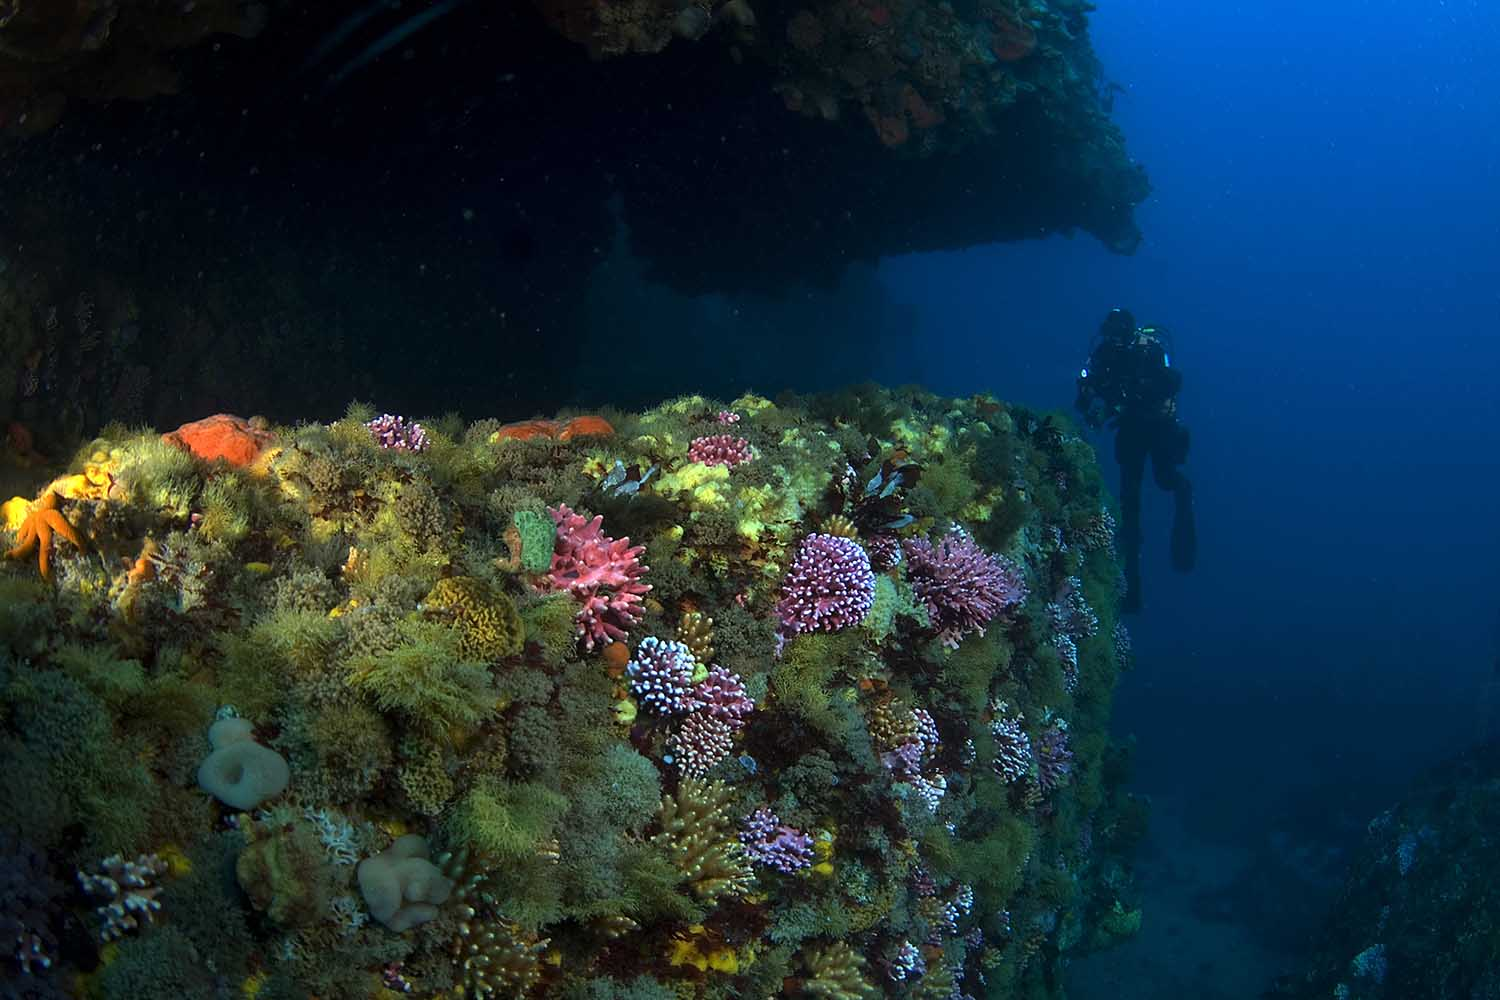 Cold water corals proliferate in the deeper waters (Geoff Spiby)